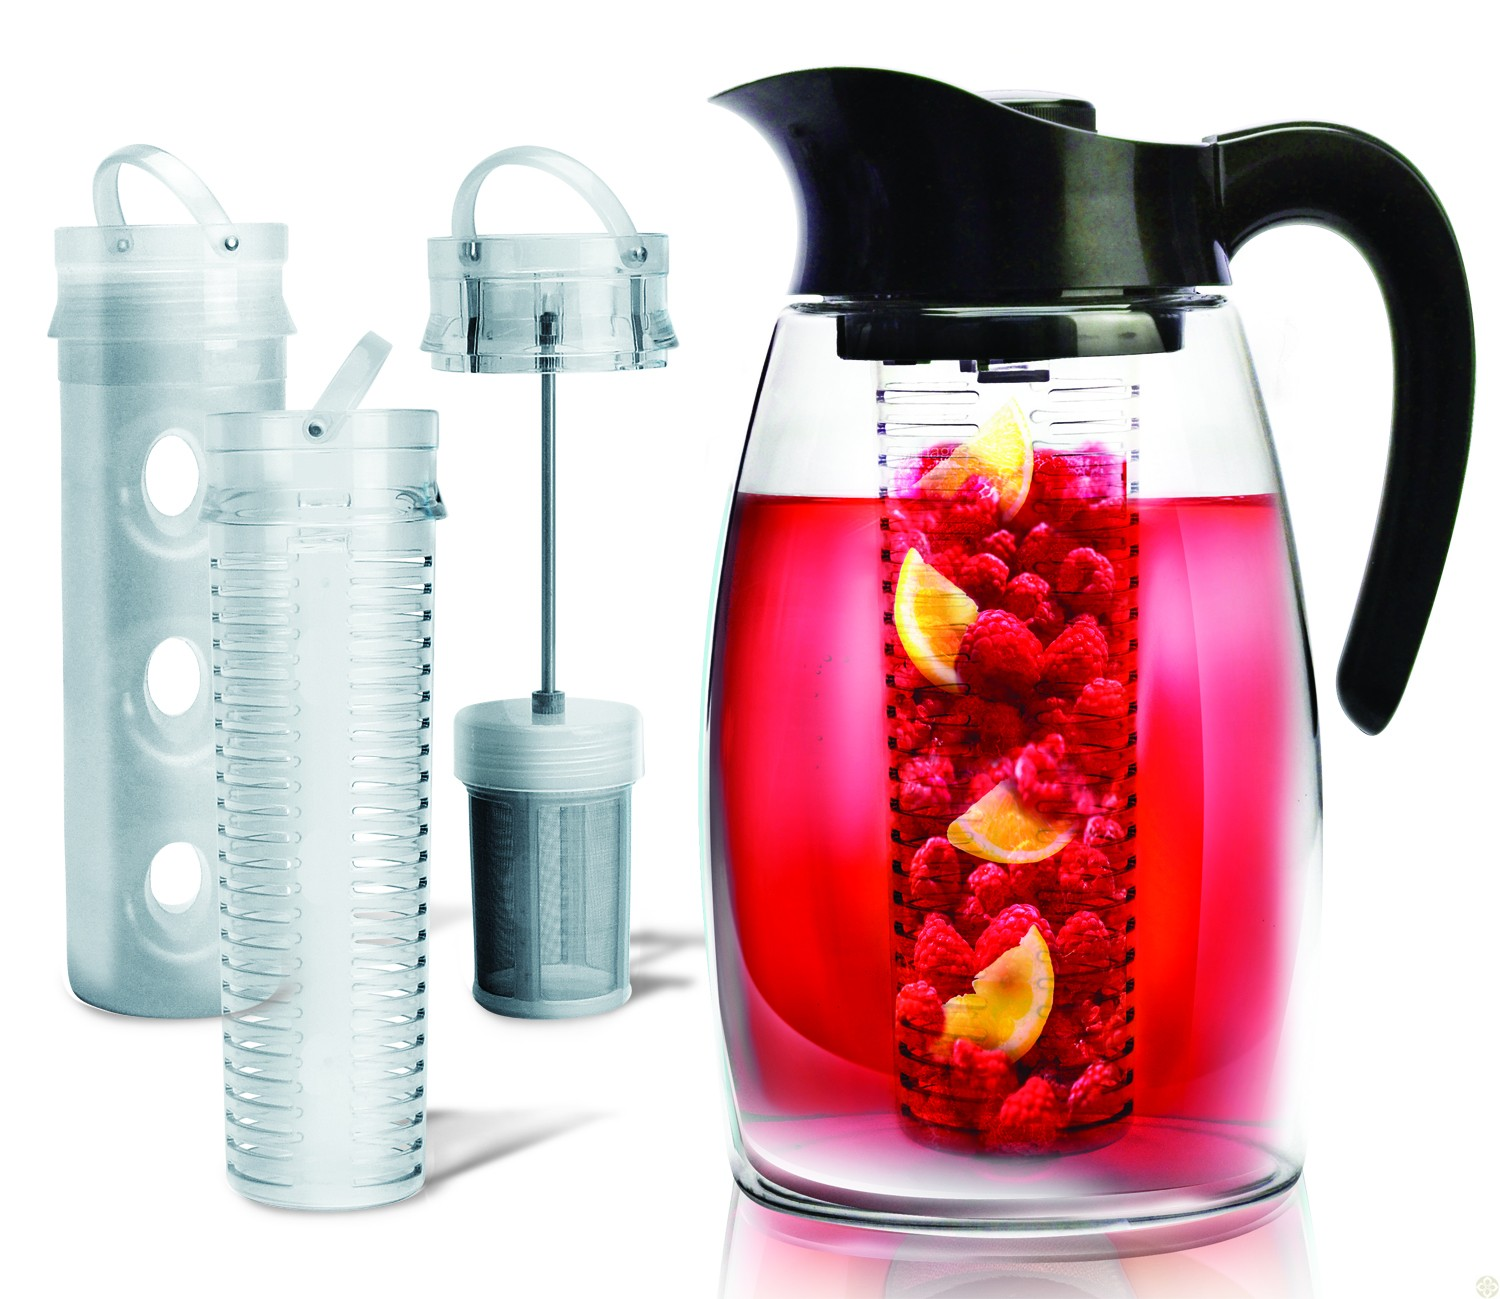 Tea Lovers: Primula Flavor It Pitcher 3-in-1 Beverage System